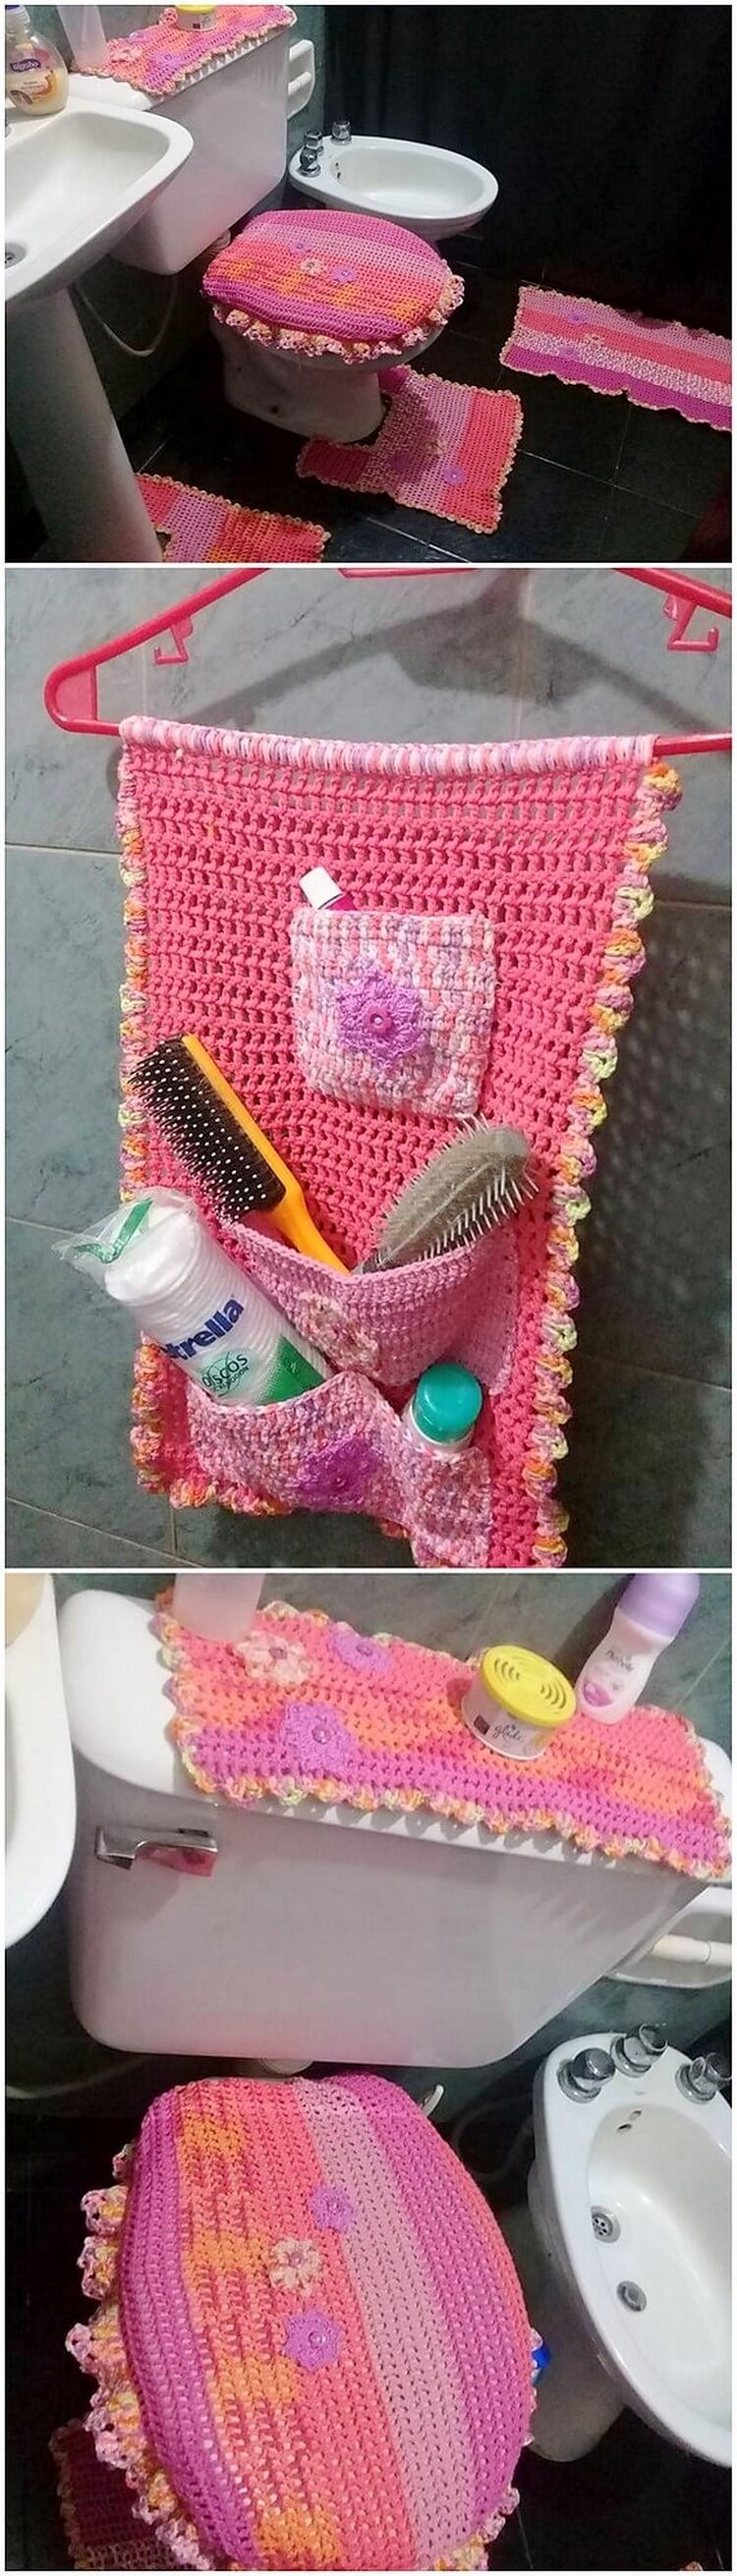 Crochet Creation for Bathroom